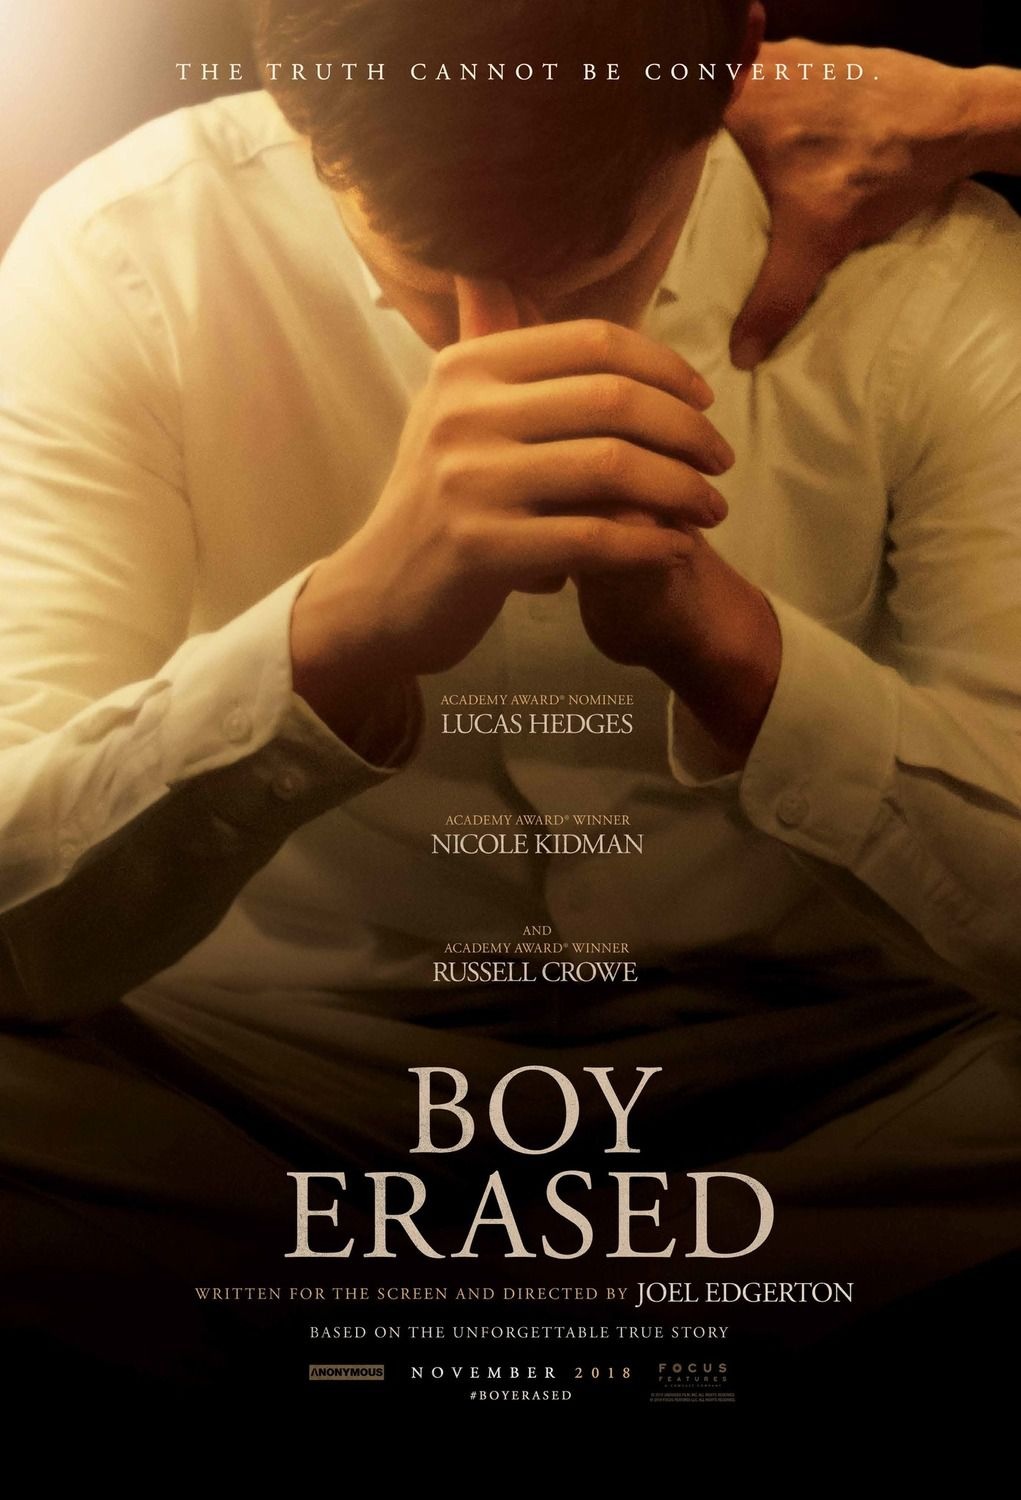 Boy Erased (2018) The truth cannot be converted - Cast: Lucas Hedges, Nicole Kidman, Russell Crowe film poster